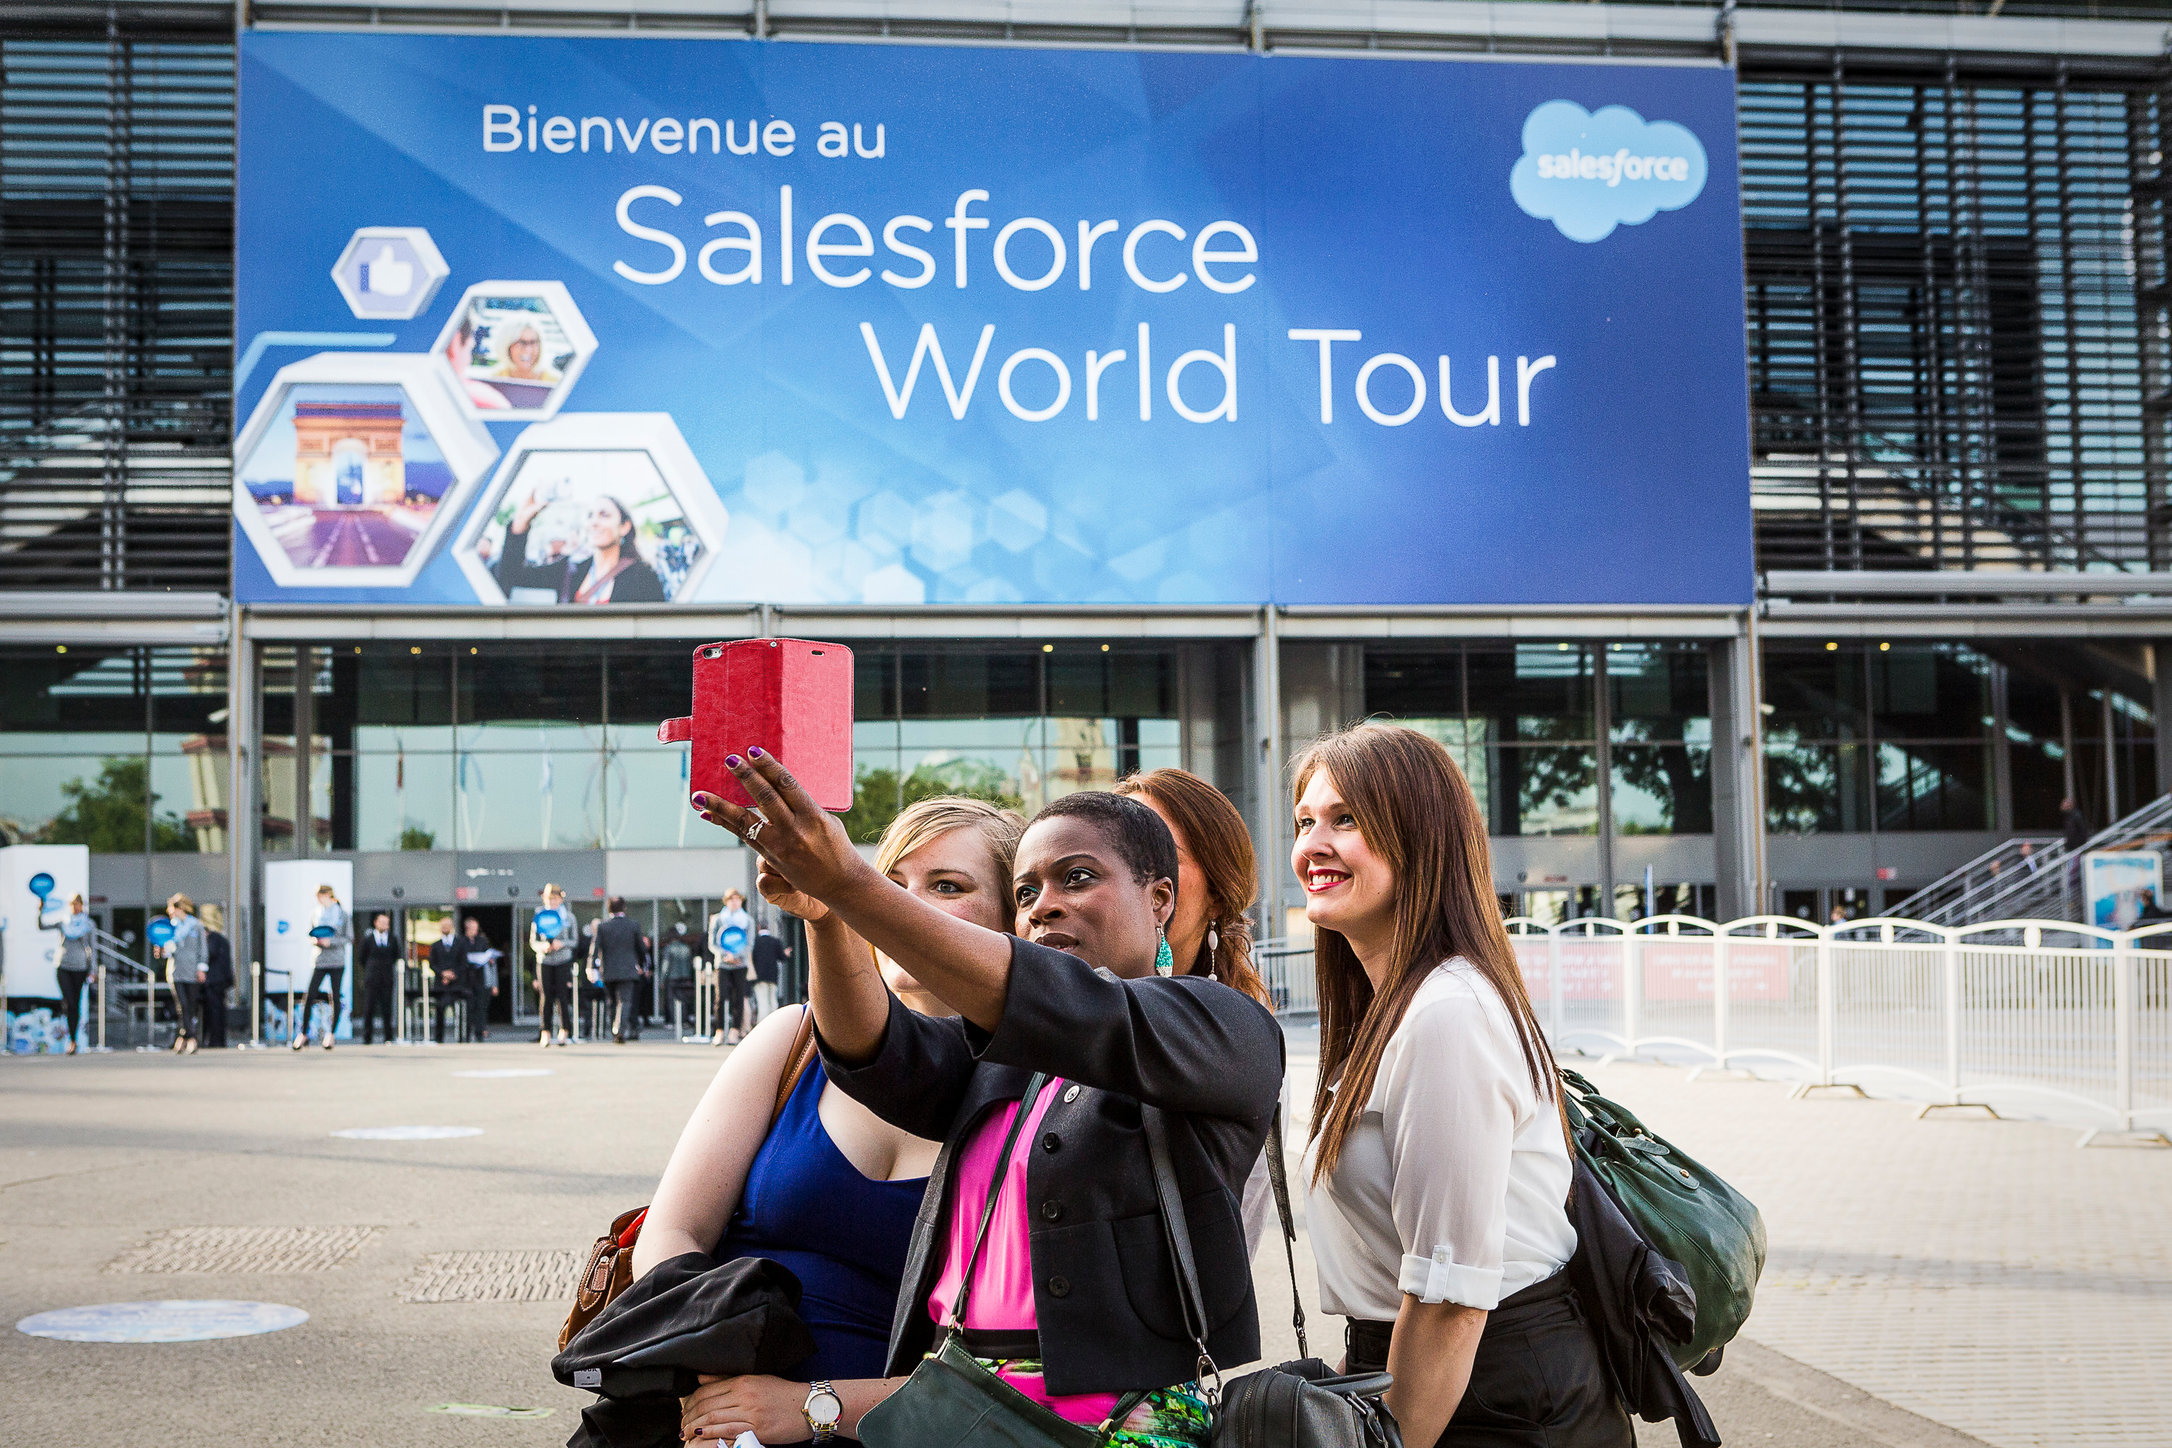 Salesforce-Paris2015-17-HighRes.jpg